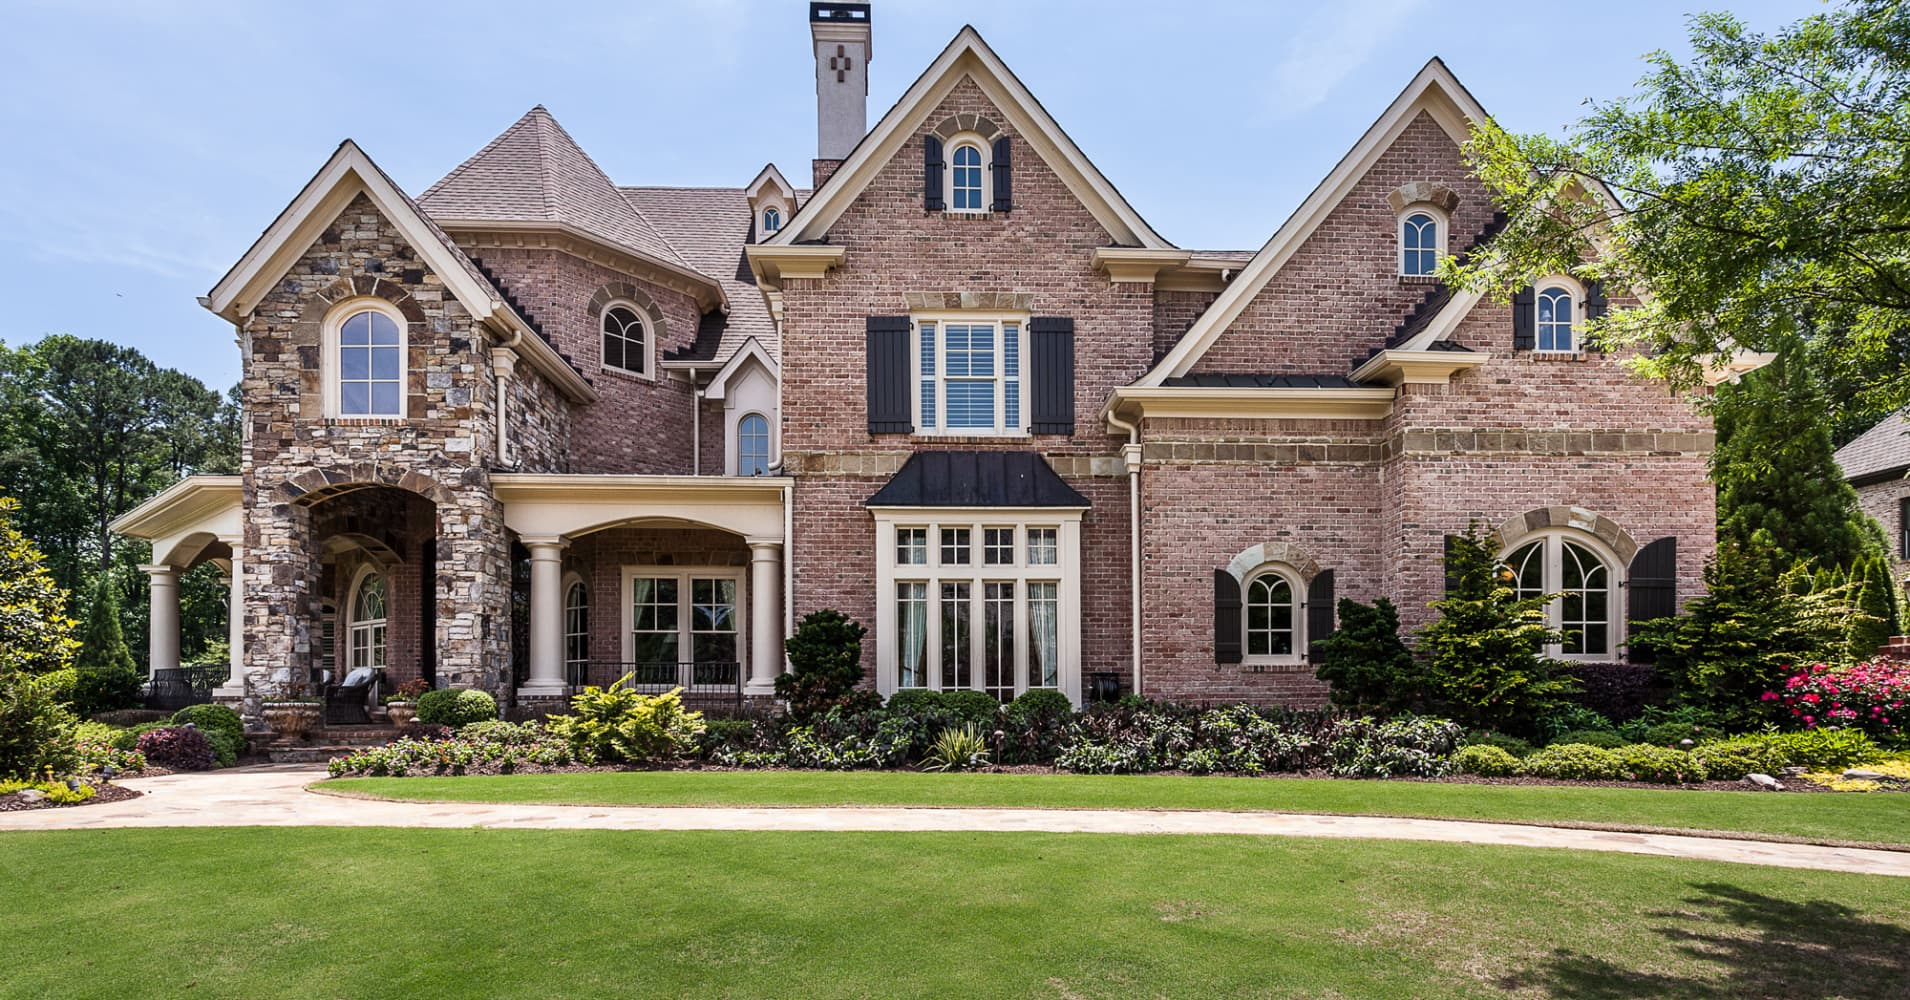 Most Expensive House We Could Get Into Alpharetta Ga